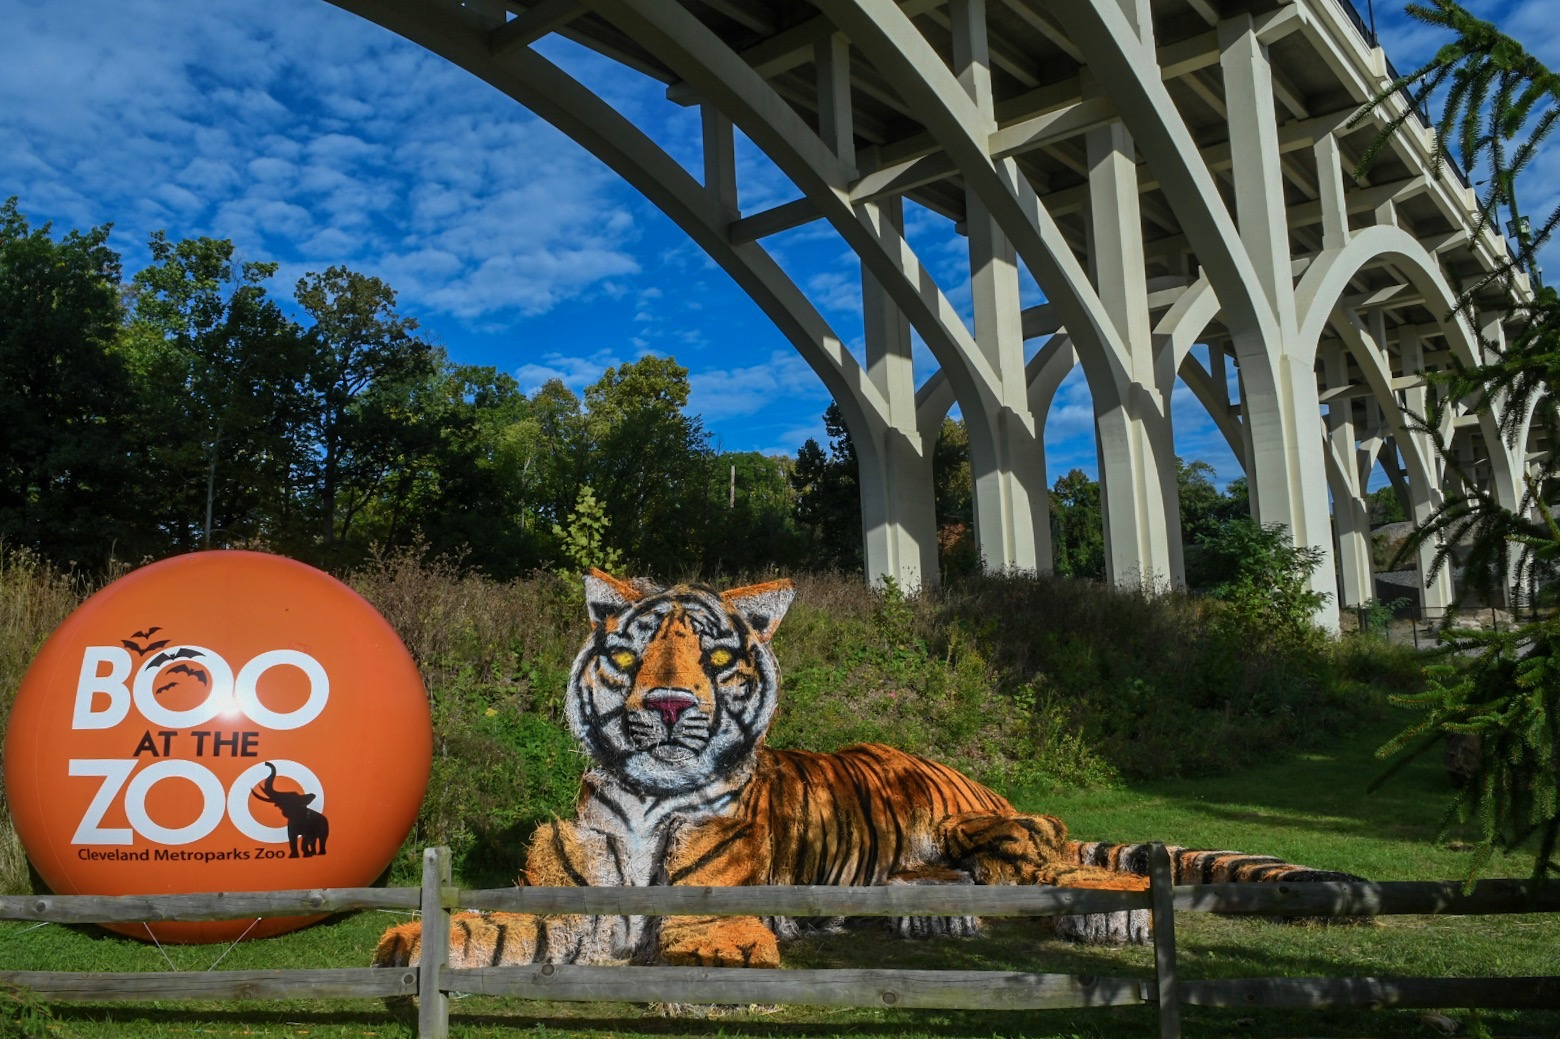 Experience Boo at the Zoo, Cleveland's Favorite Halloween Tradition